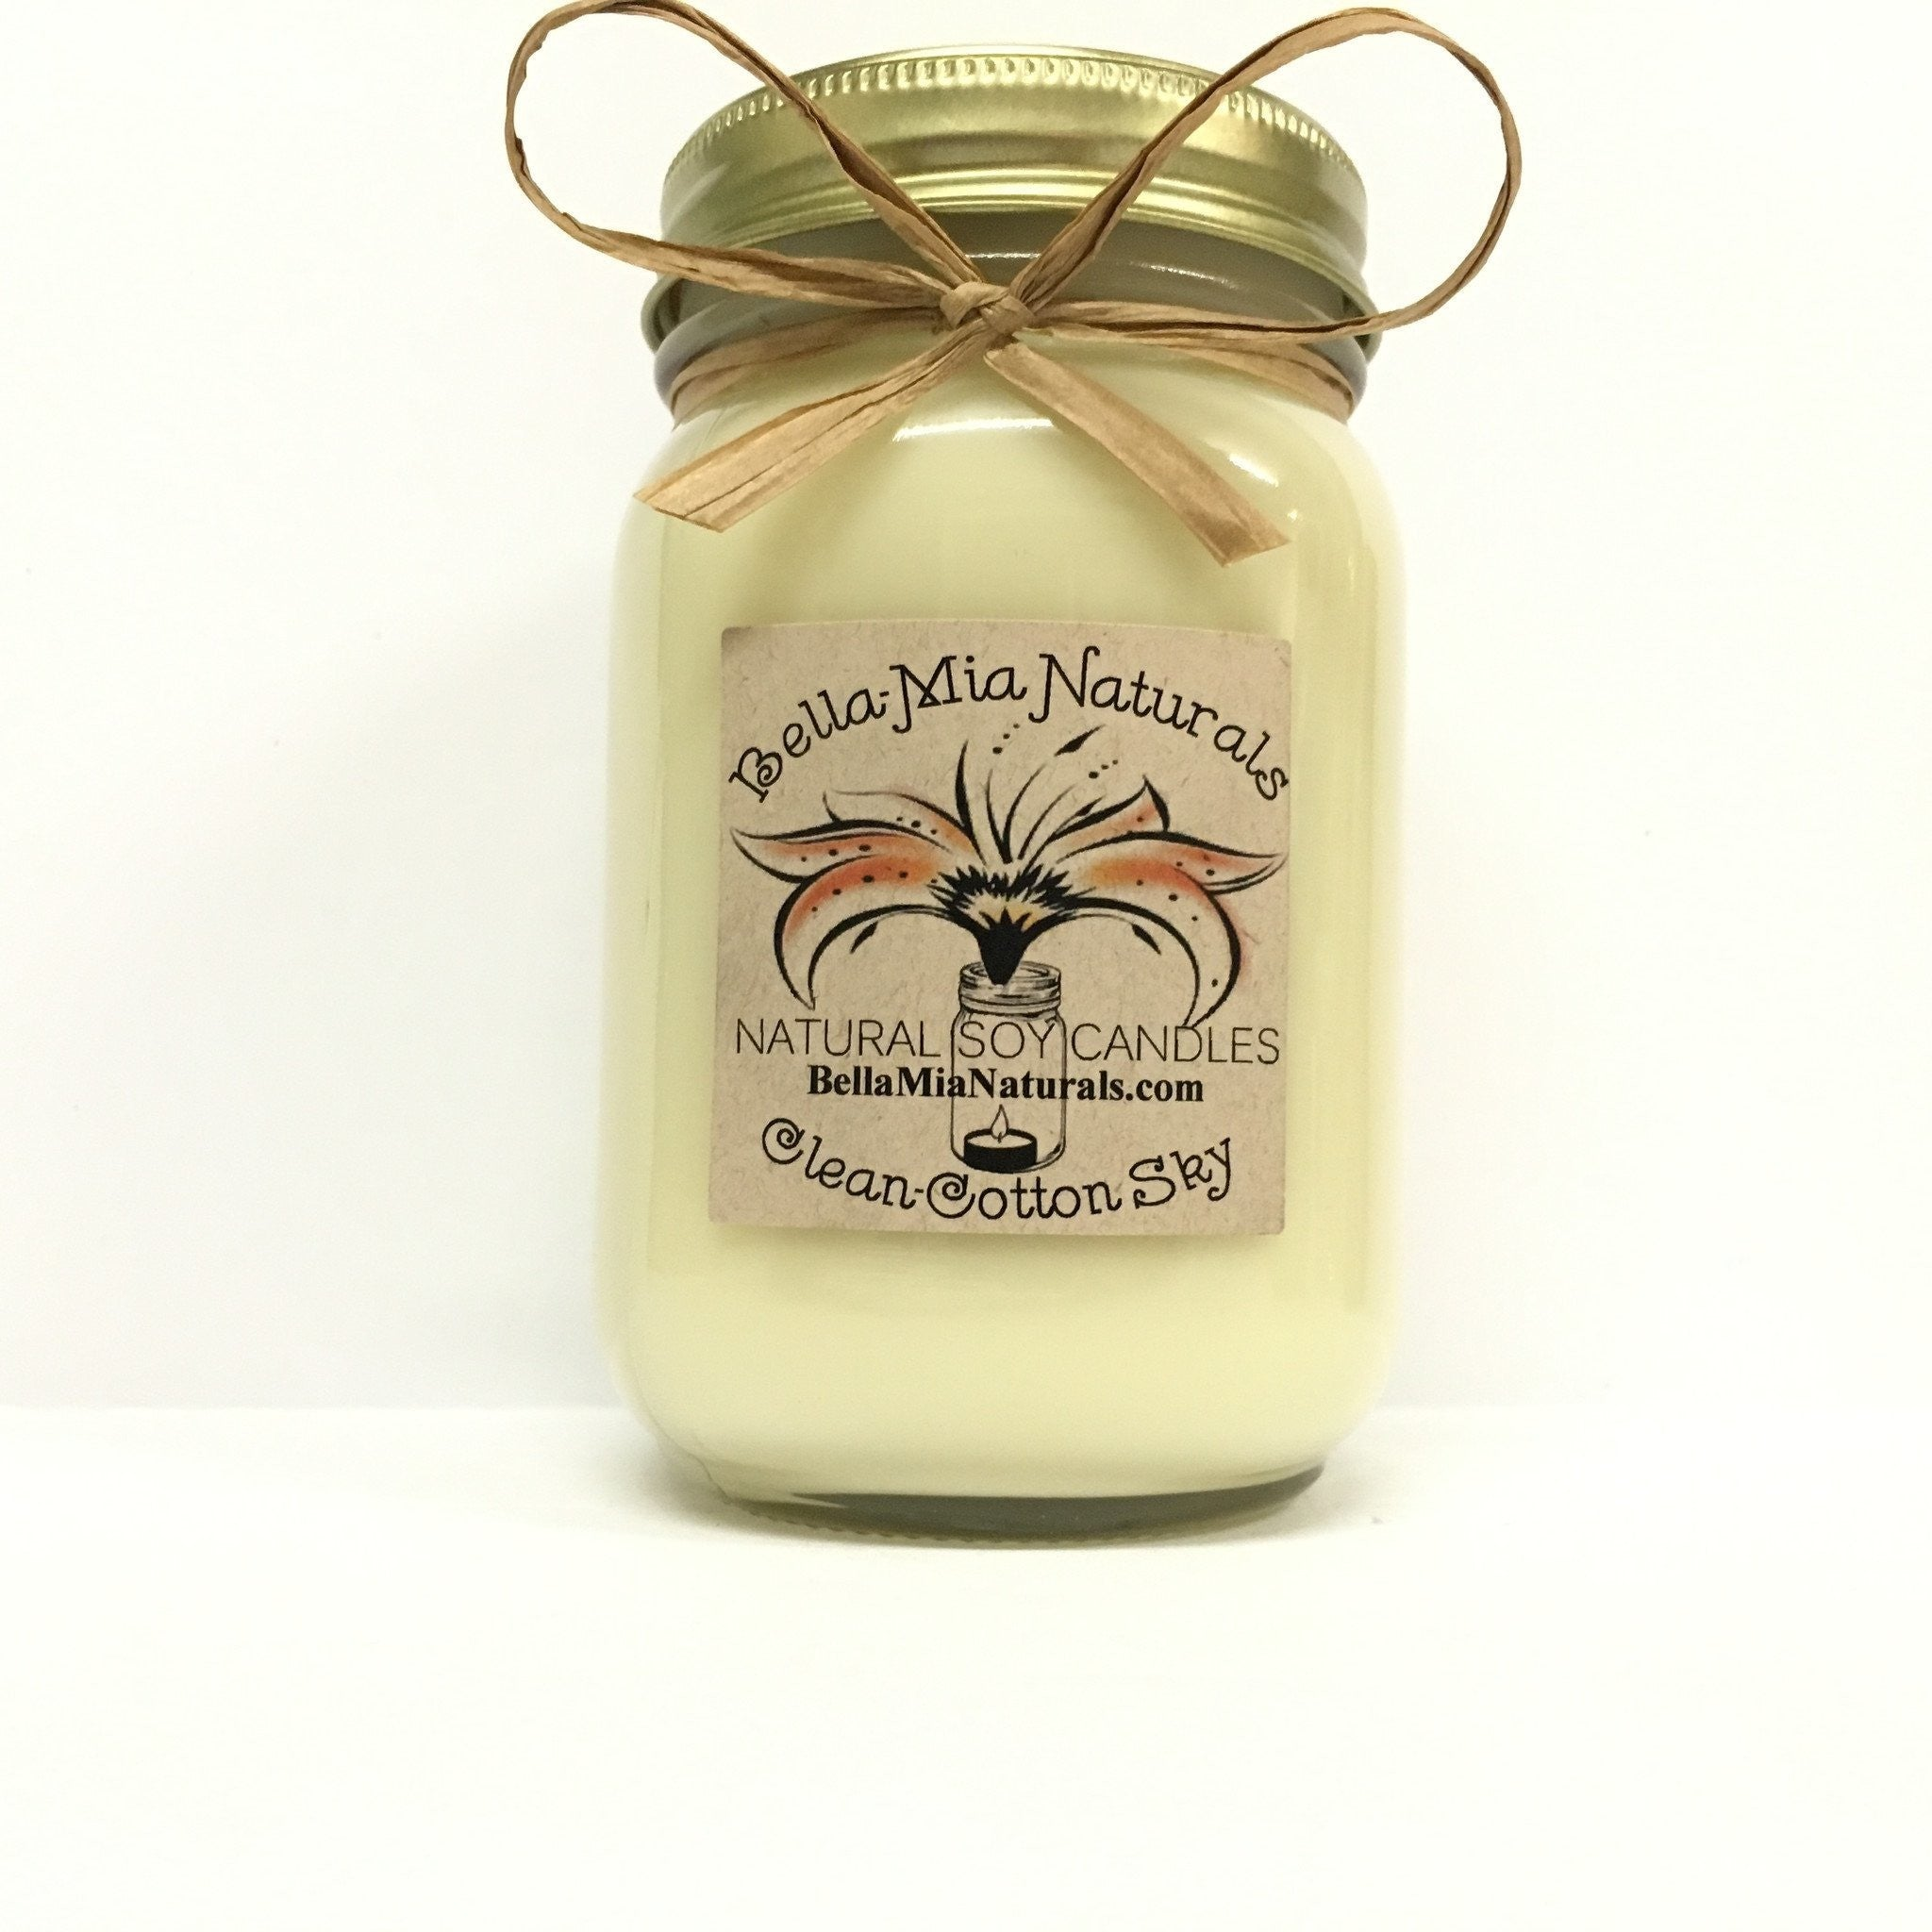 Clean Cotton-Sky Natural Hand Poured Soy Candles - Pint - Bella-Mia Naturals All Natural Soy Candles & Lip Balms - 2